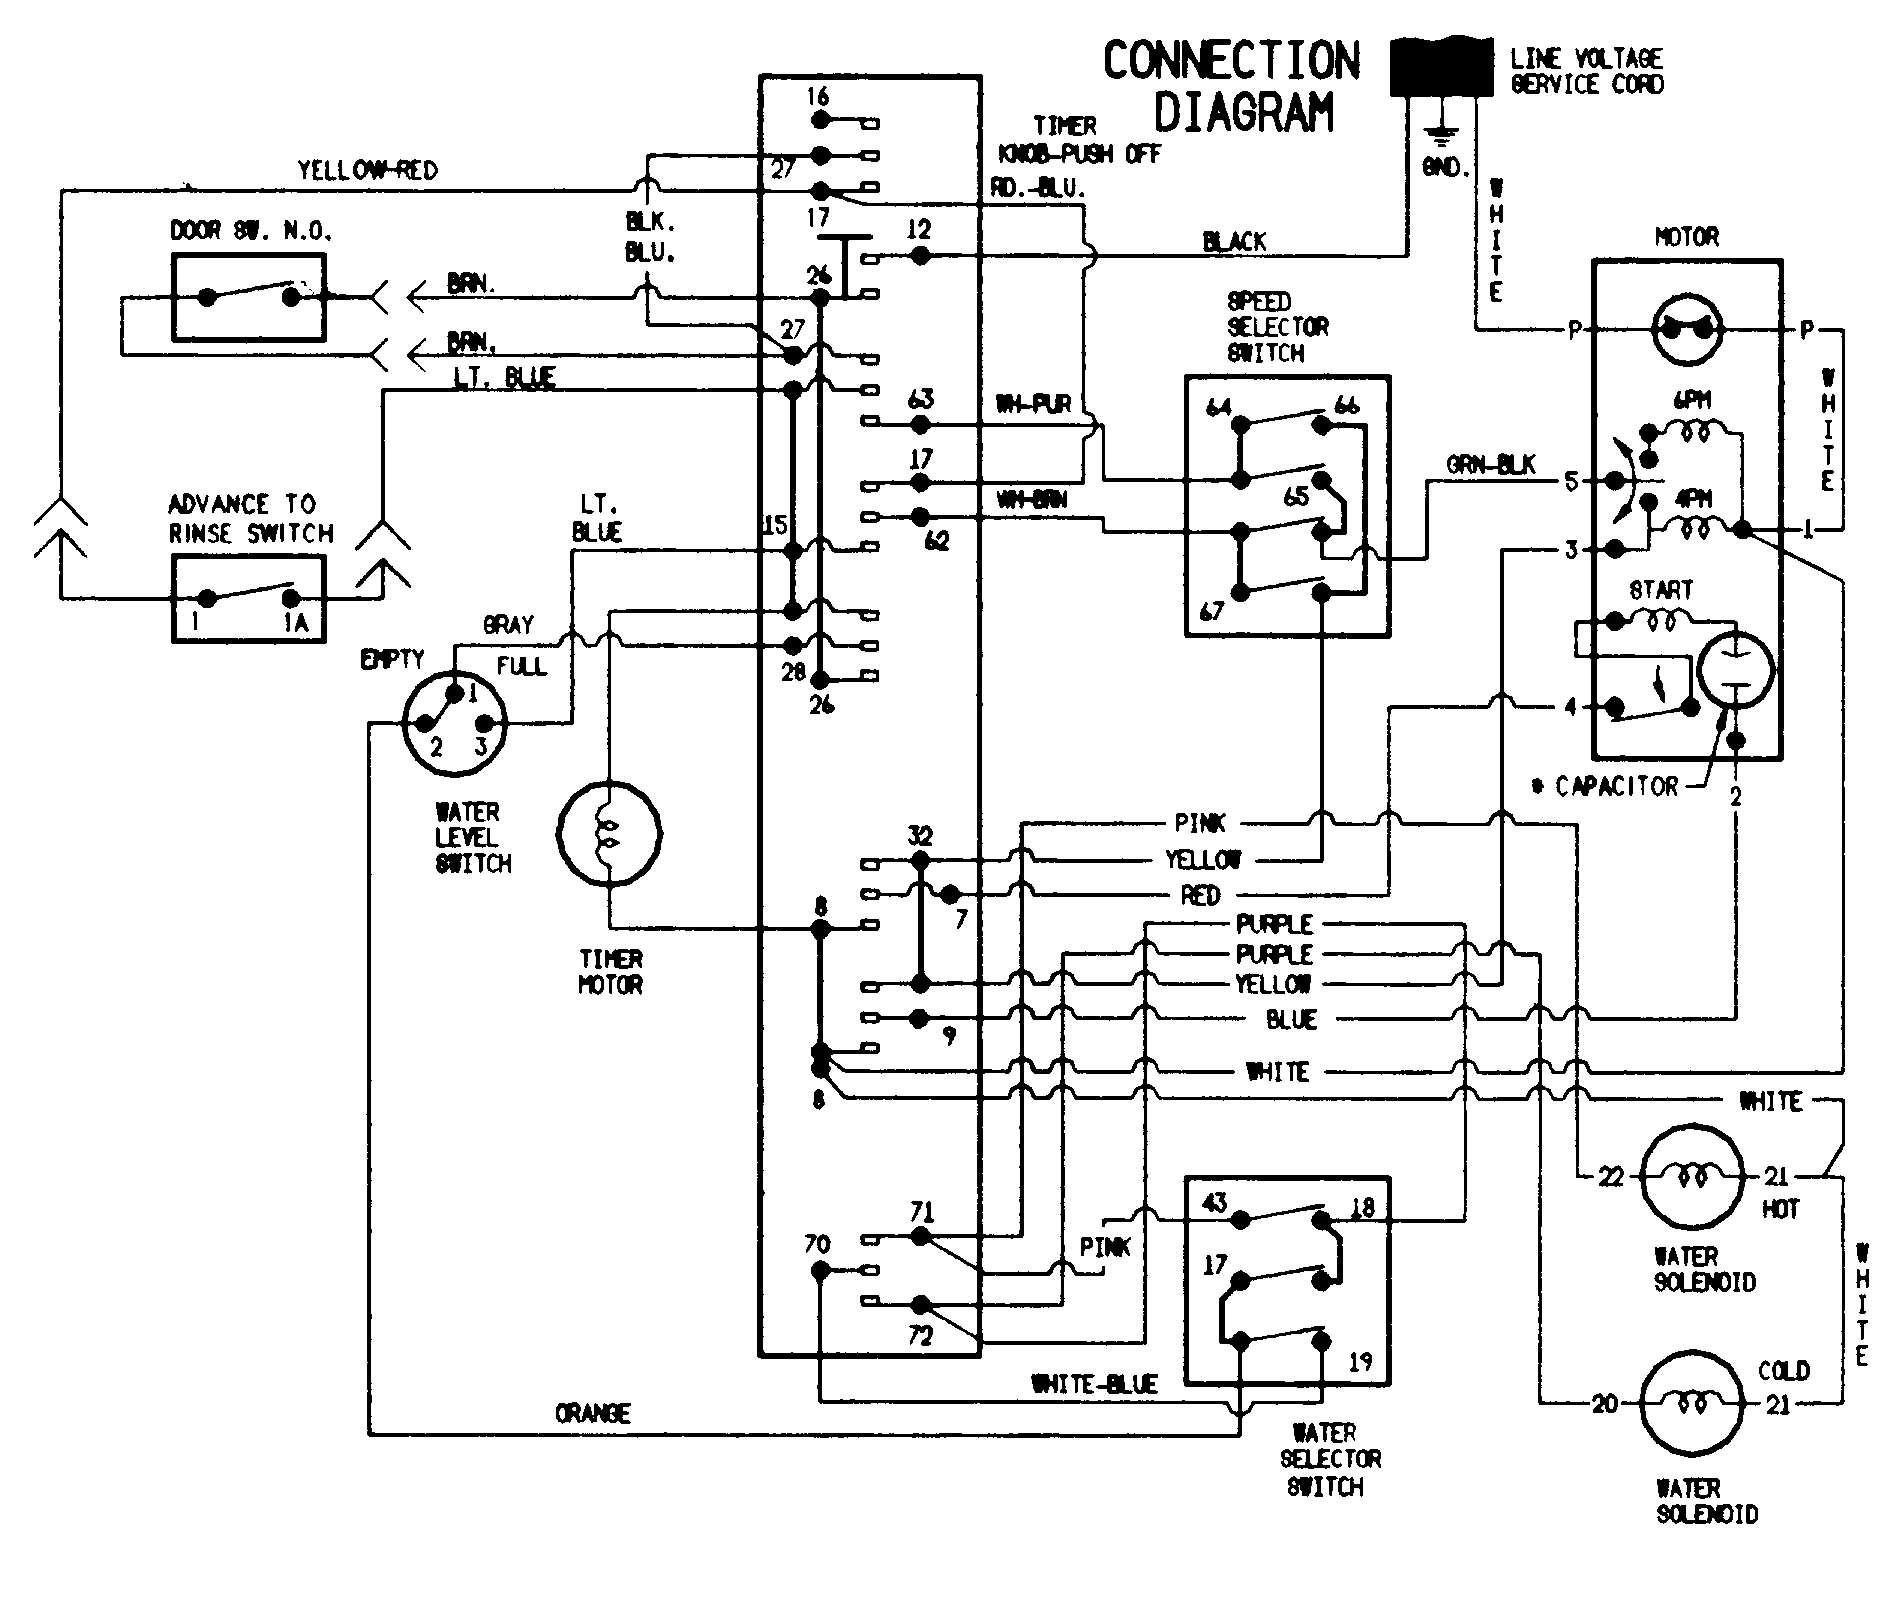 Hot Water Heater Thermostat Wiring Diagram moreover Wiring Diagram For Pool Pump On 110 as well Wiring A Hot Tub For 220 Diagram in addition 110 Vs 220 Volt Wiring further Superflo Pump And Motor Wiring Diagram. on wiring diagram for a 220v hot water heater